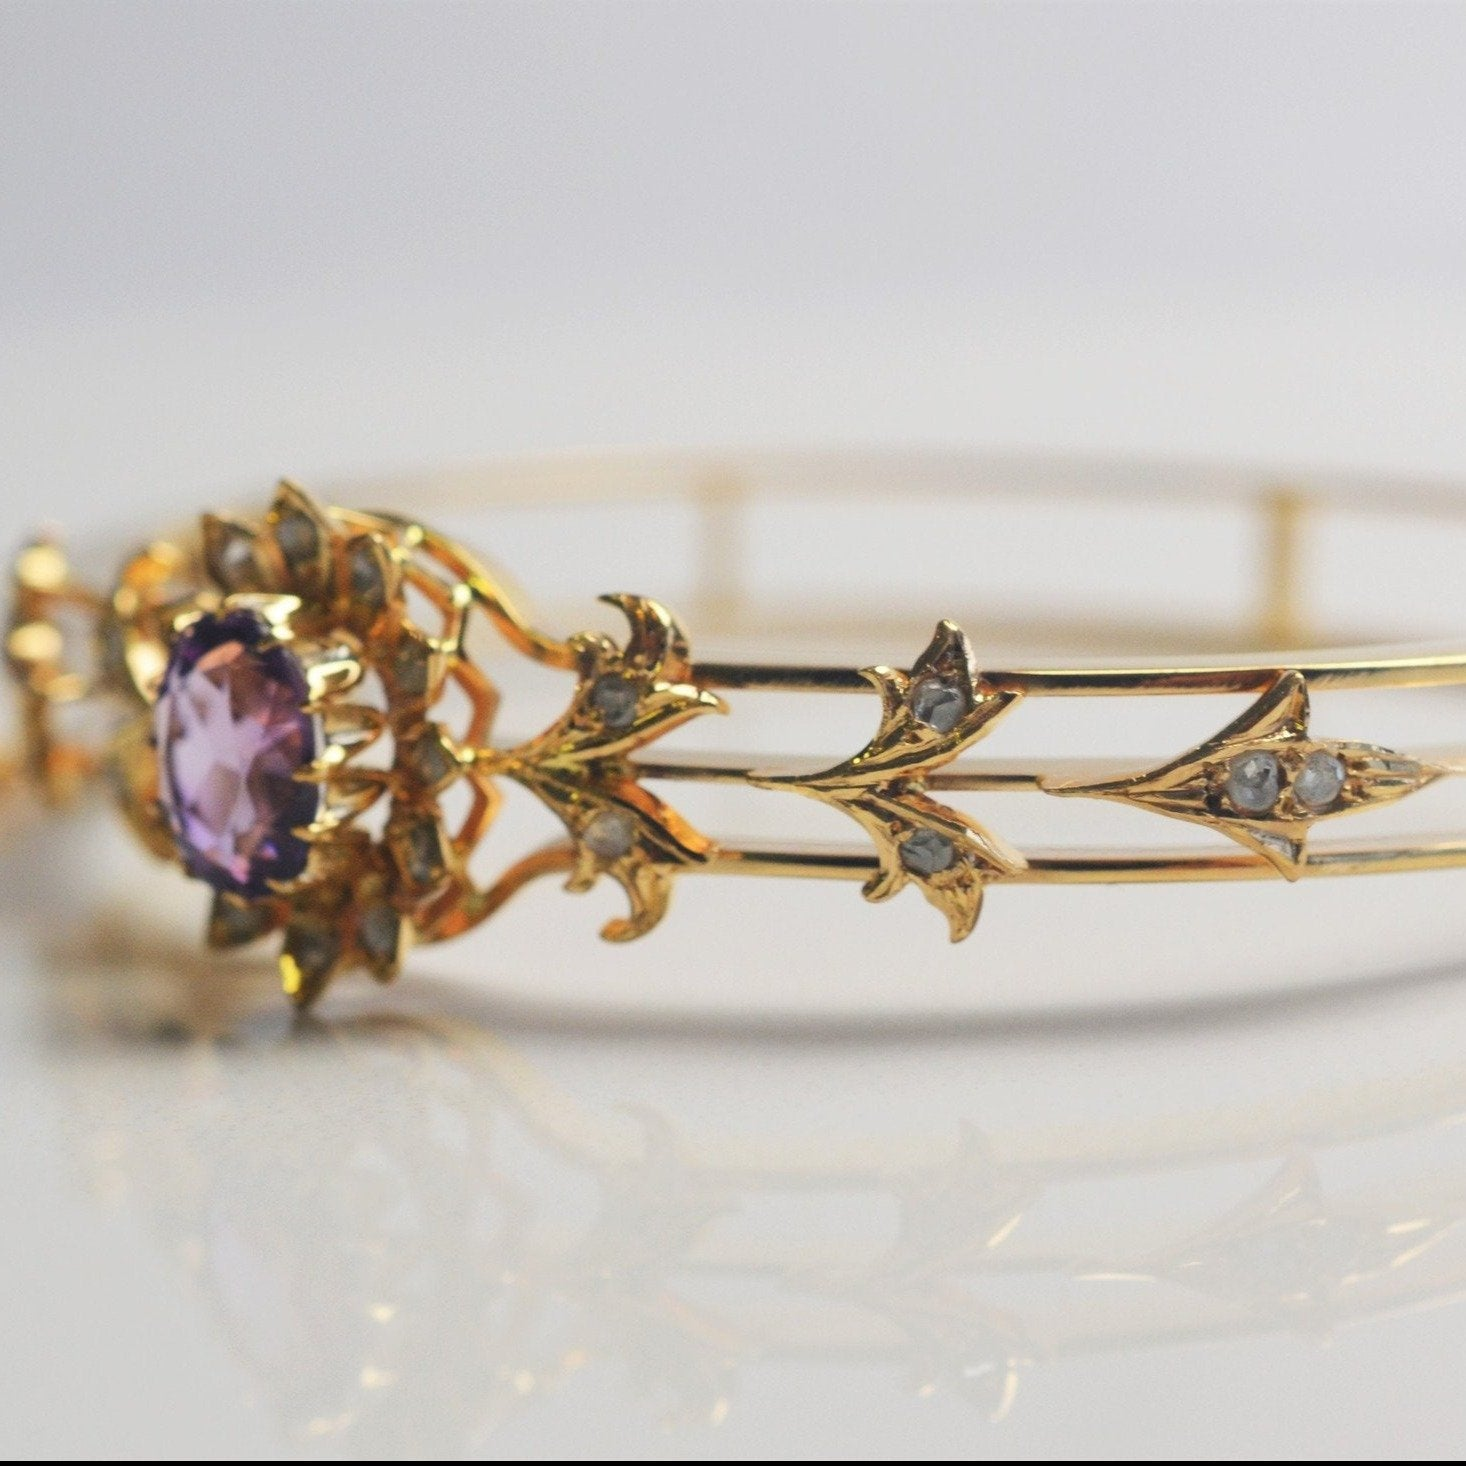 Edwardian Era Diamond & Amethyst Bracelet | 0.35ctw, 1.75ct |